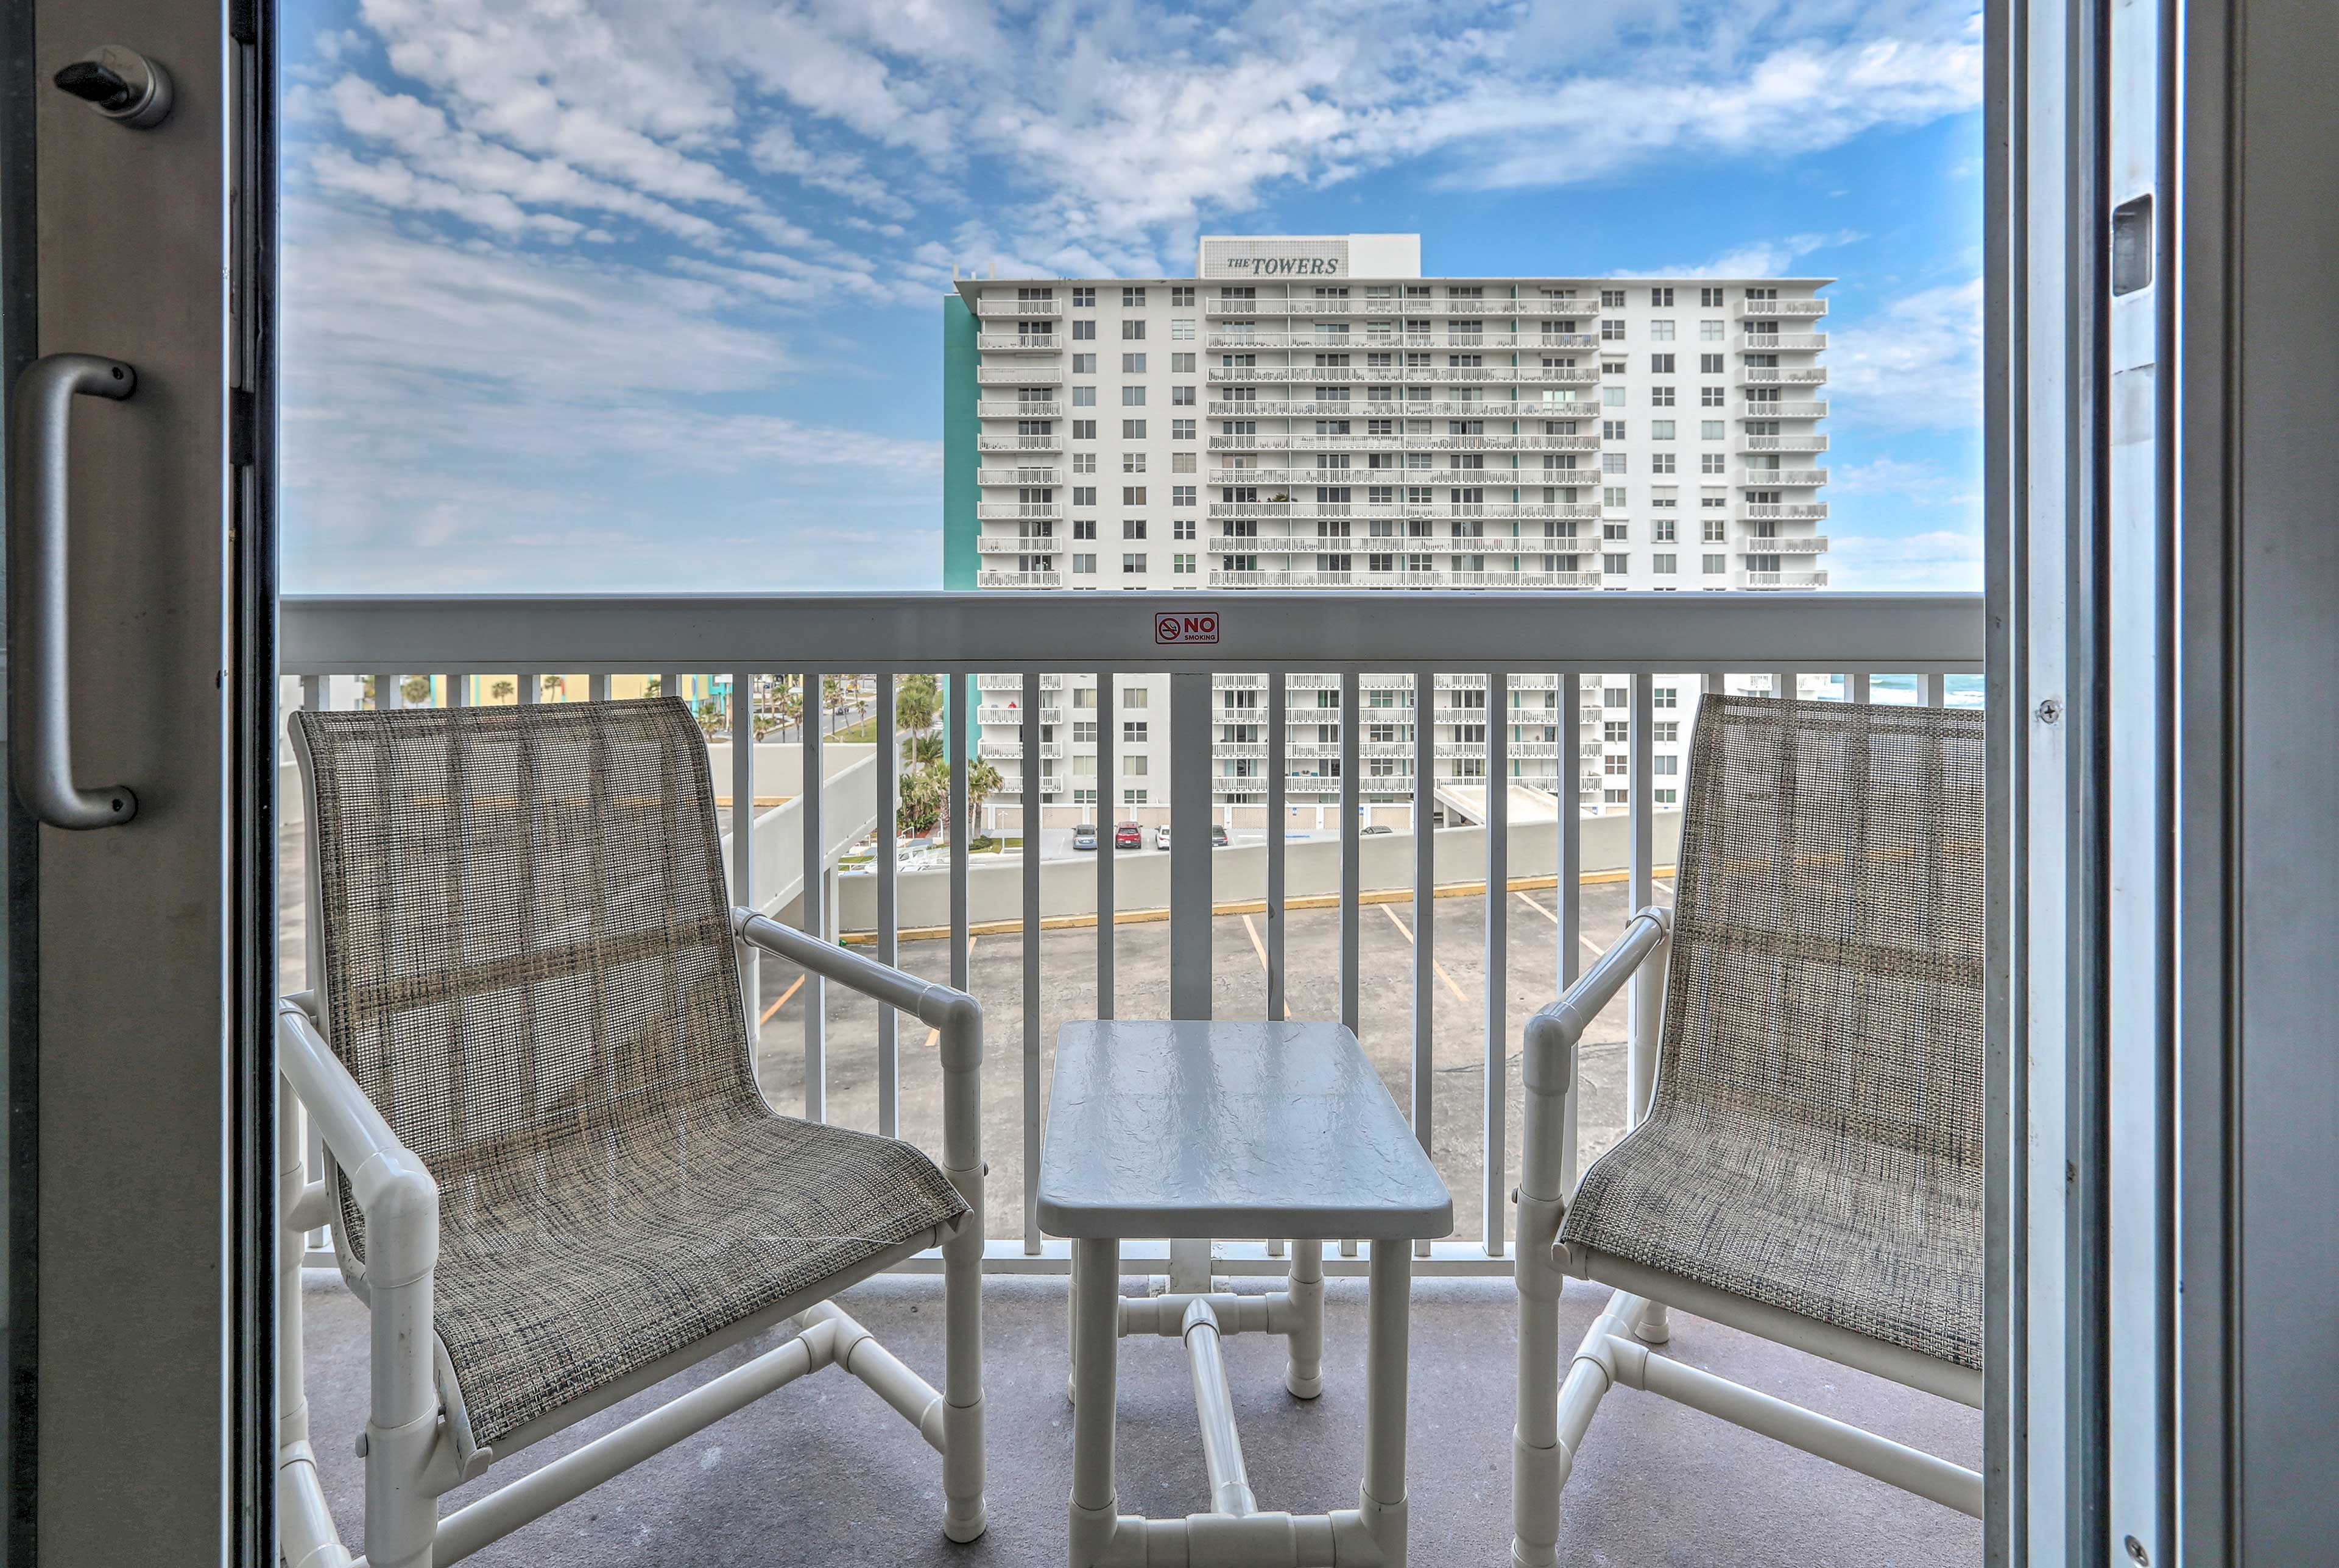 Lounge on the balcony with your favorite beverage.